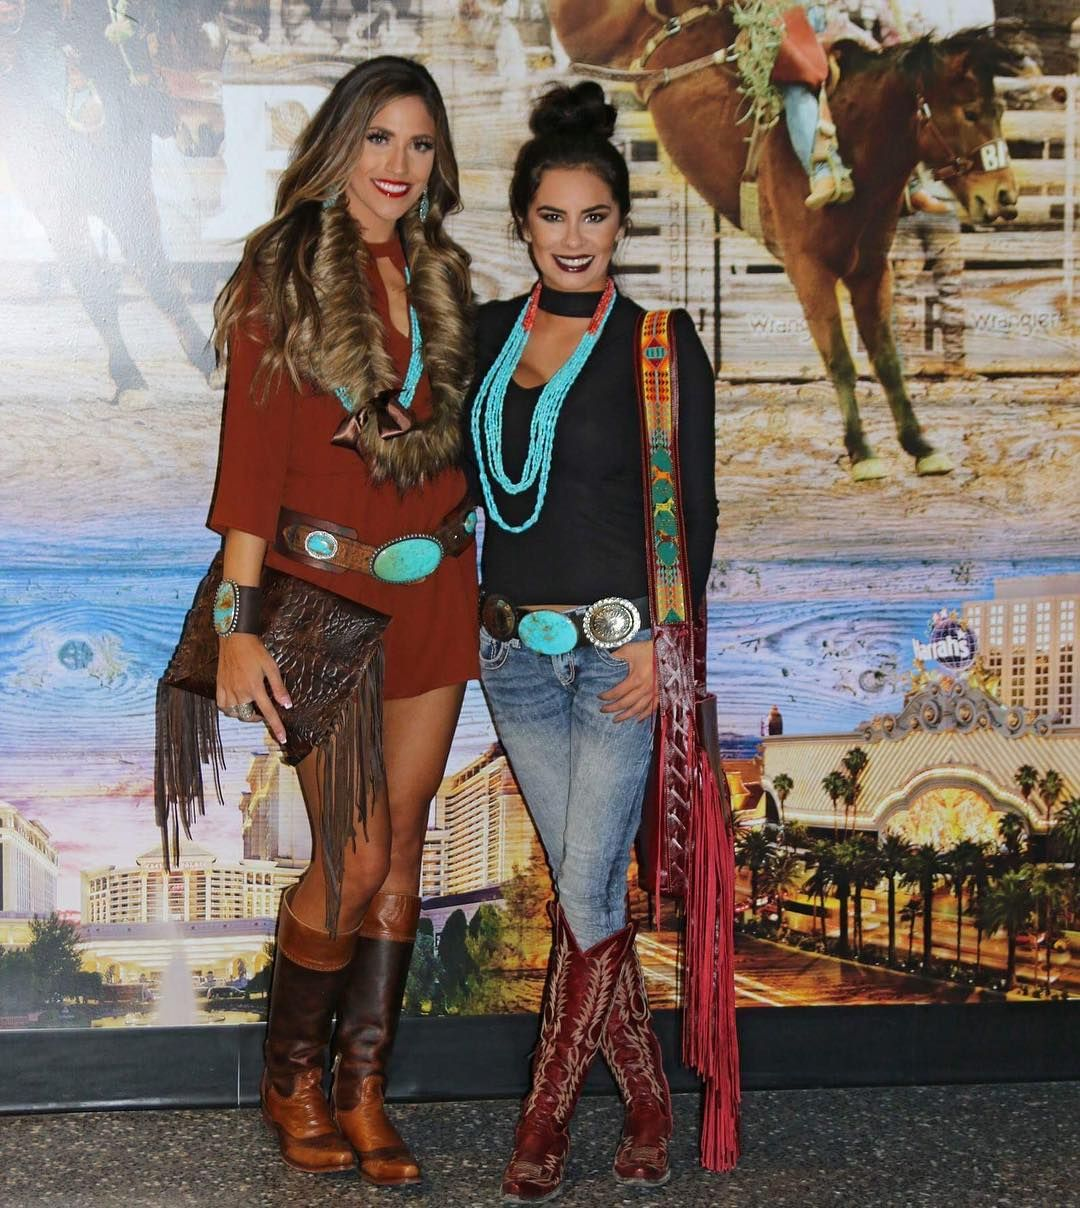 Pin By Autumn Puryear On Cowgirl Roots In 2019 Fashion